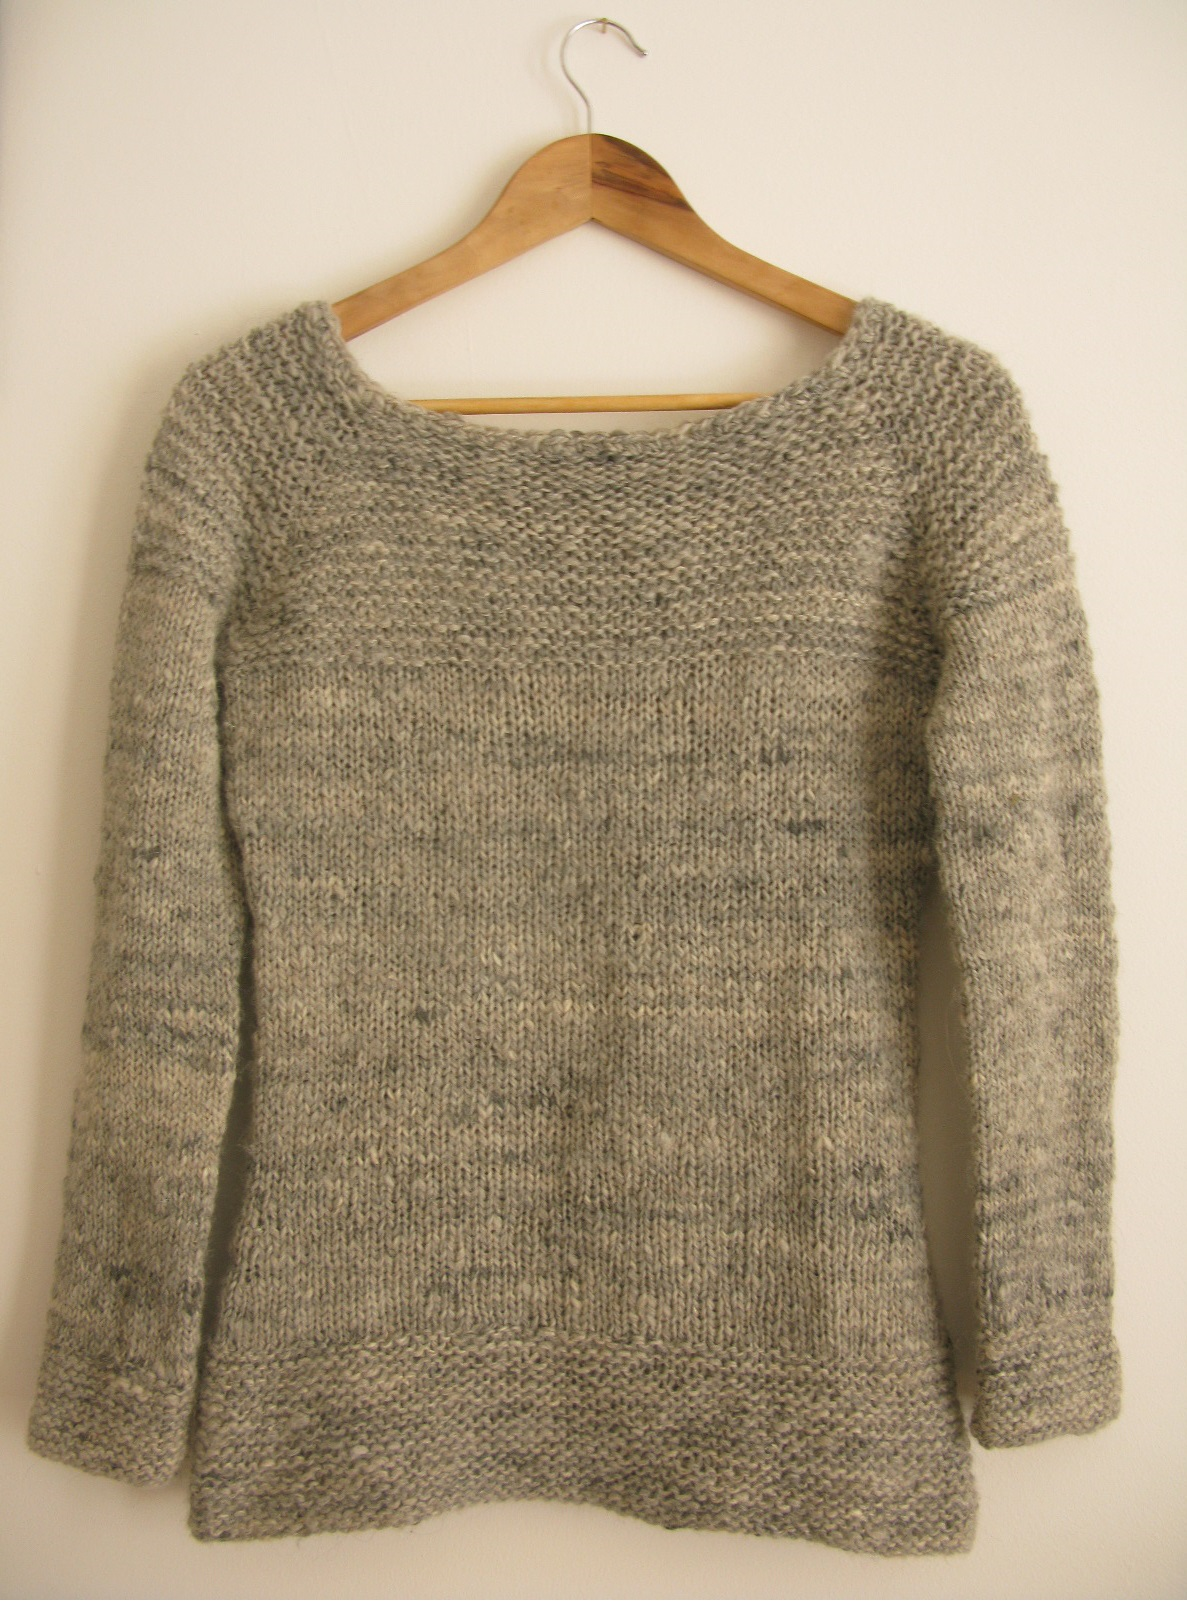 Chunky Knit Sweater Pattern Free : Caora Sweater Pattern Caora Fibres